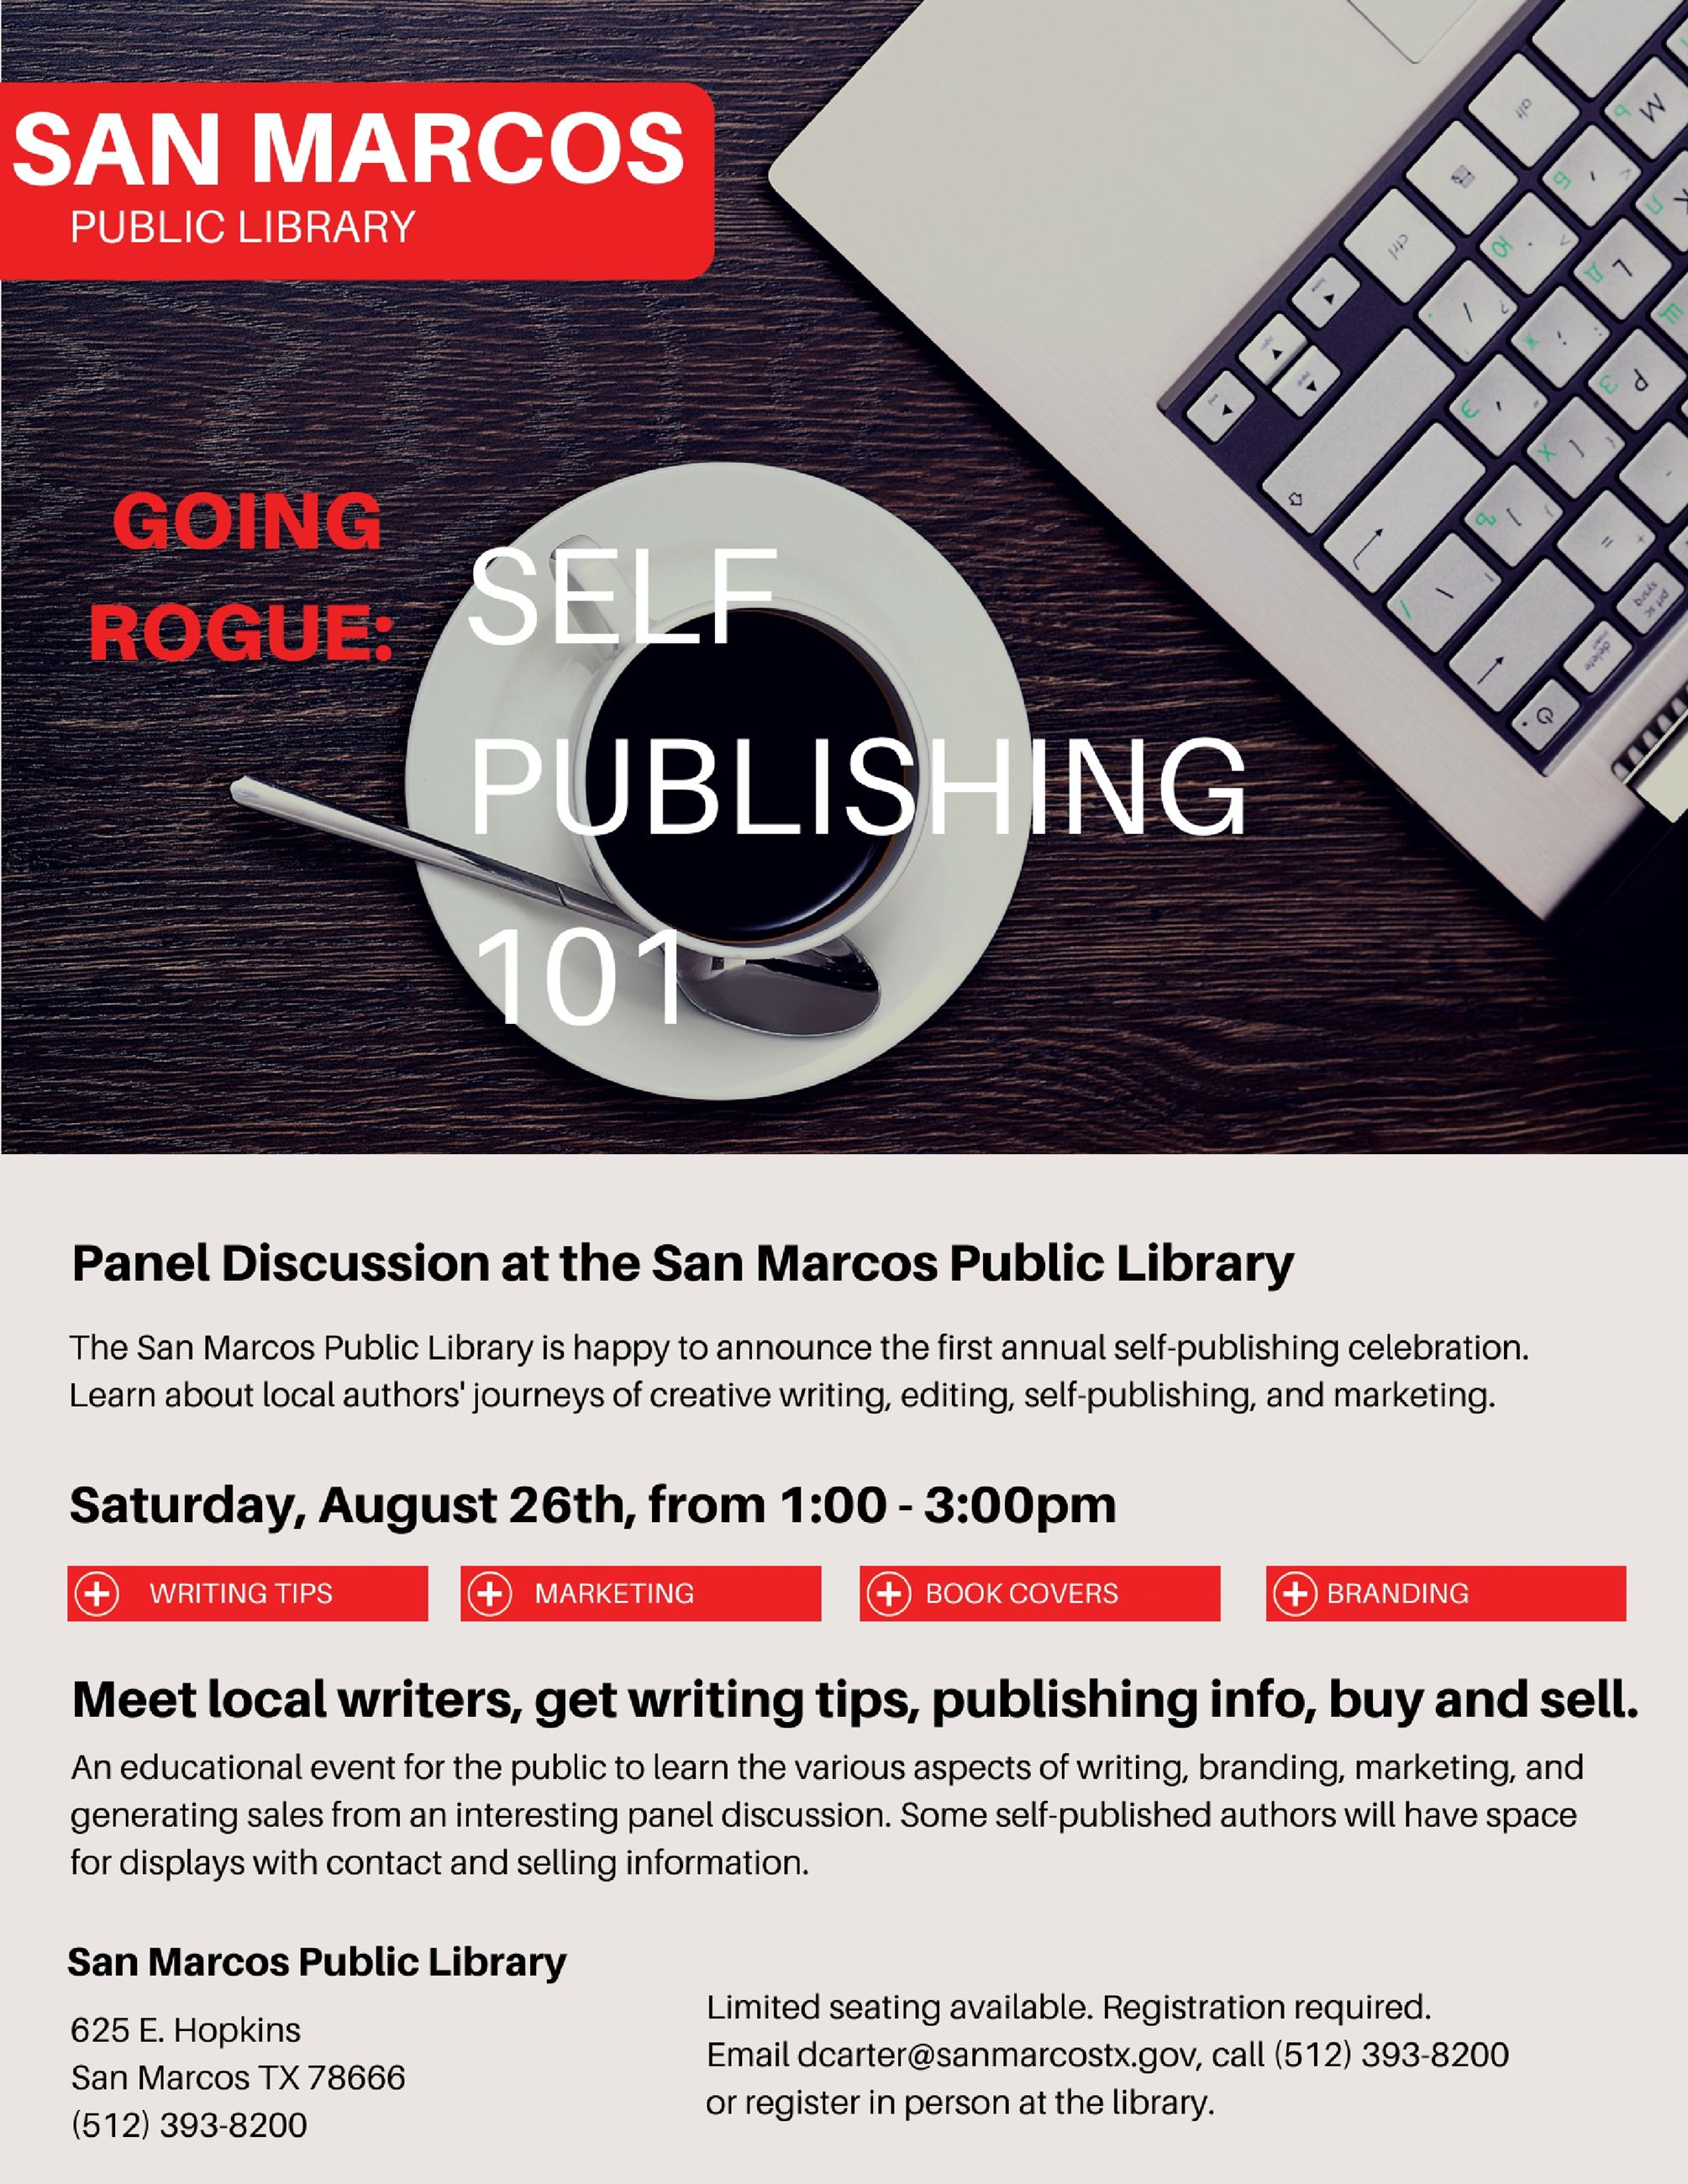 Flyer for Self Publishing 101